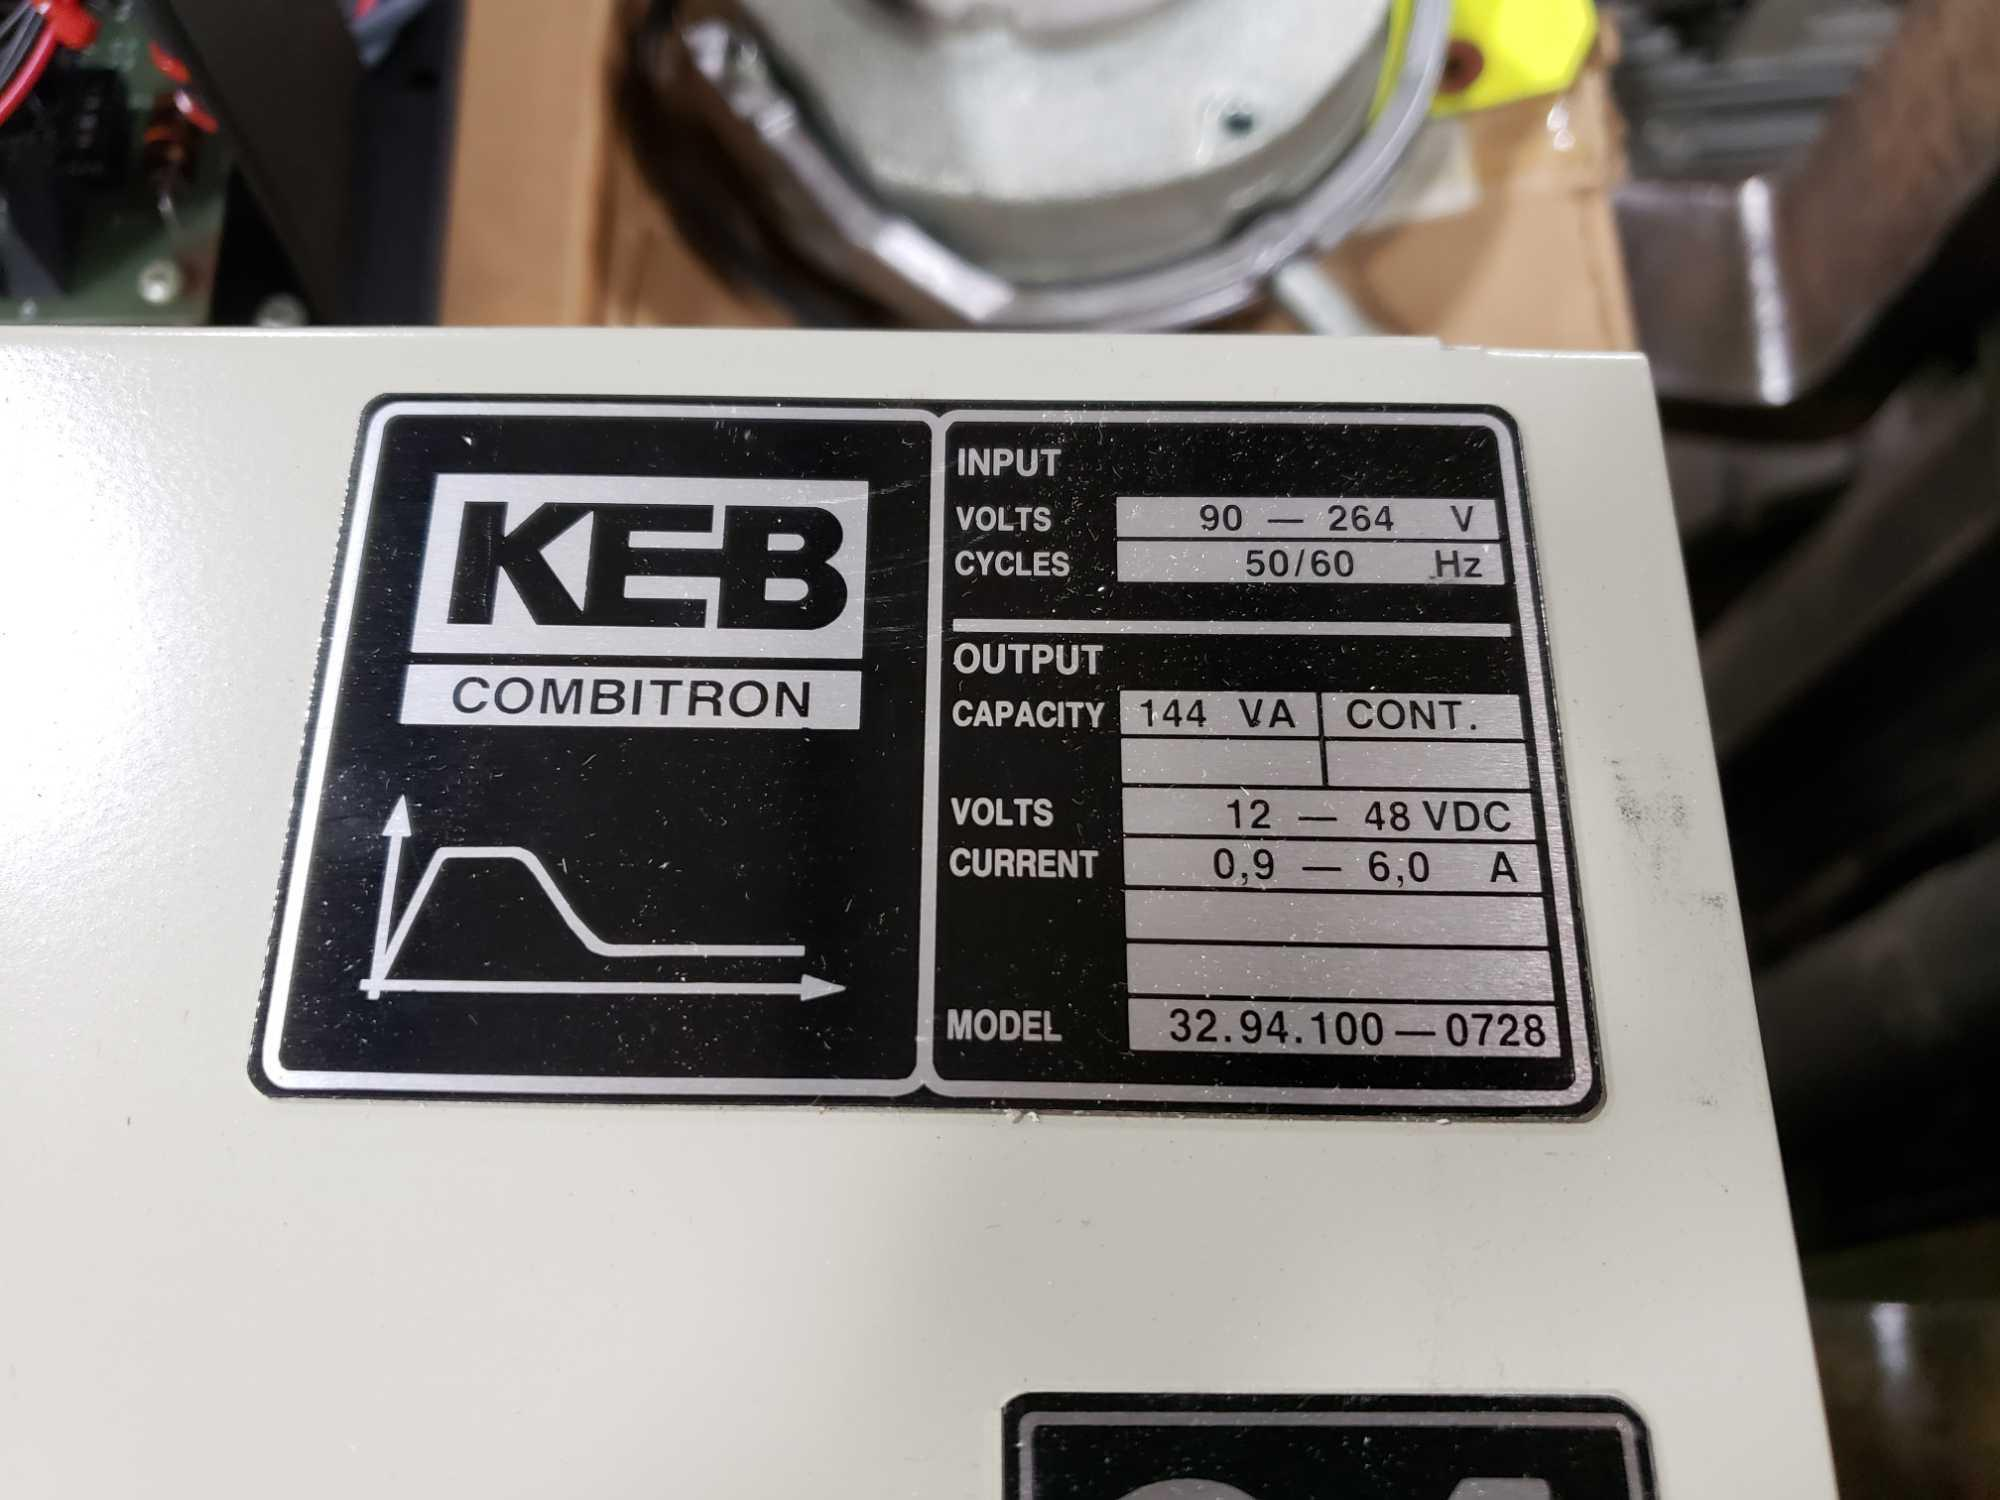 KEB Combitron drive model 32.94.100-0728. 90-264v input, 12-48vdc output. New in box. - Image 2 of 3